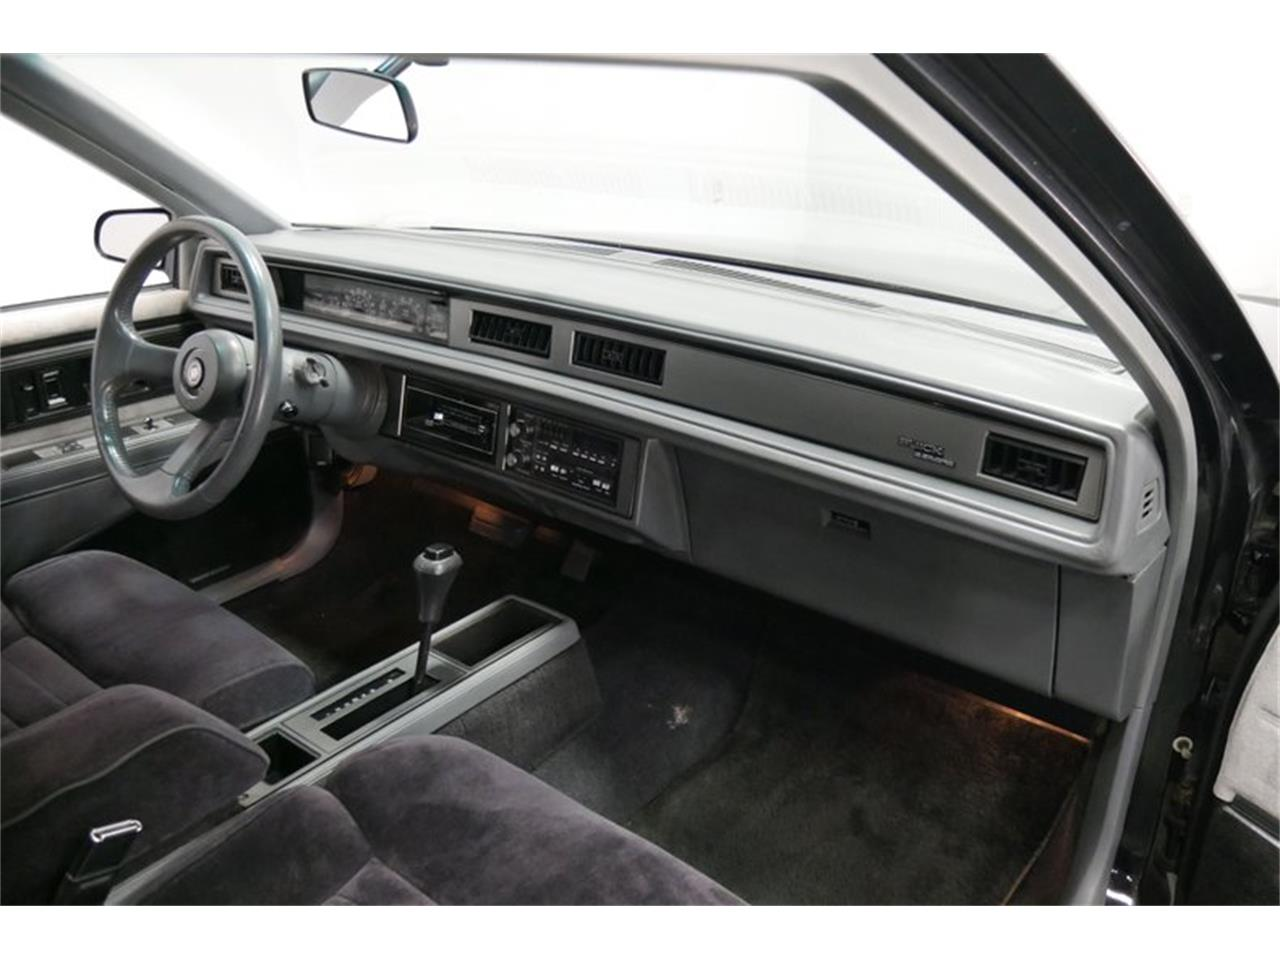 Large Picture of 1989 Buick LeSabre located in Lavergne Tennessee - $9,995.00 - QRKK